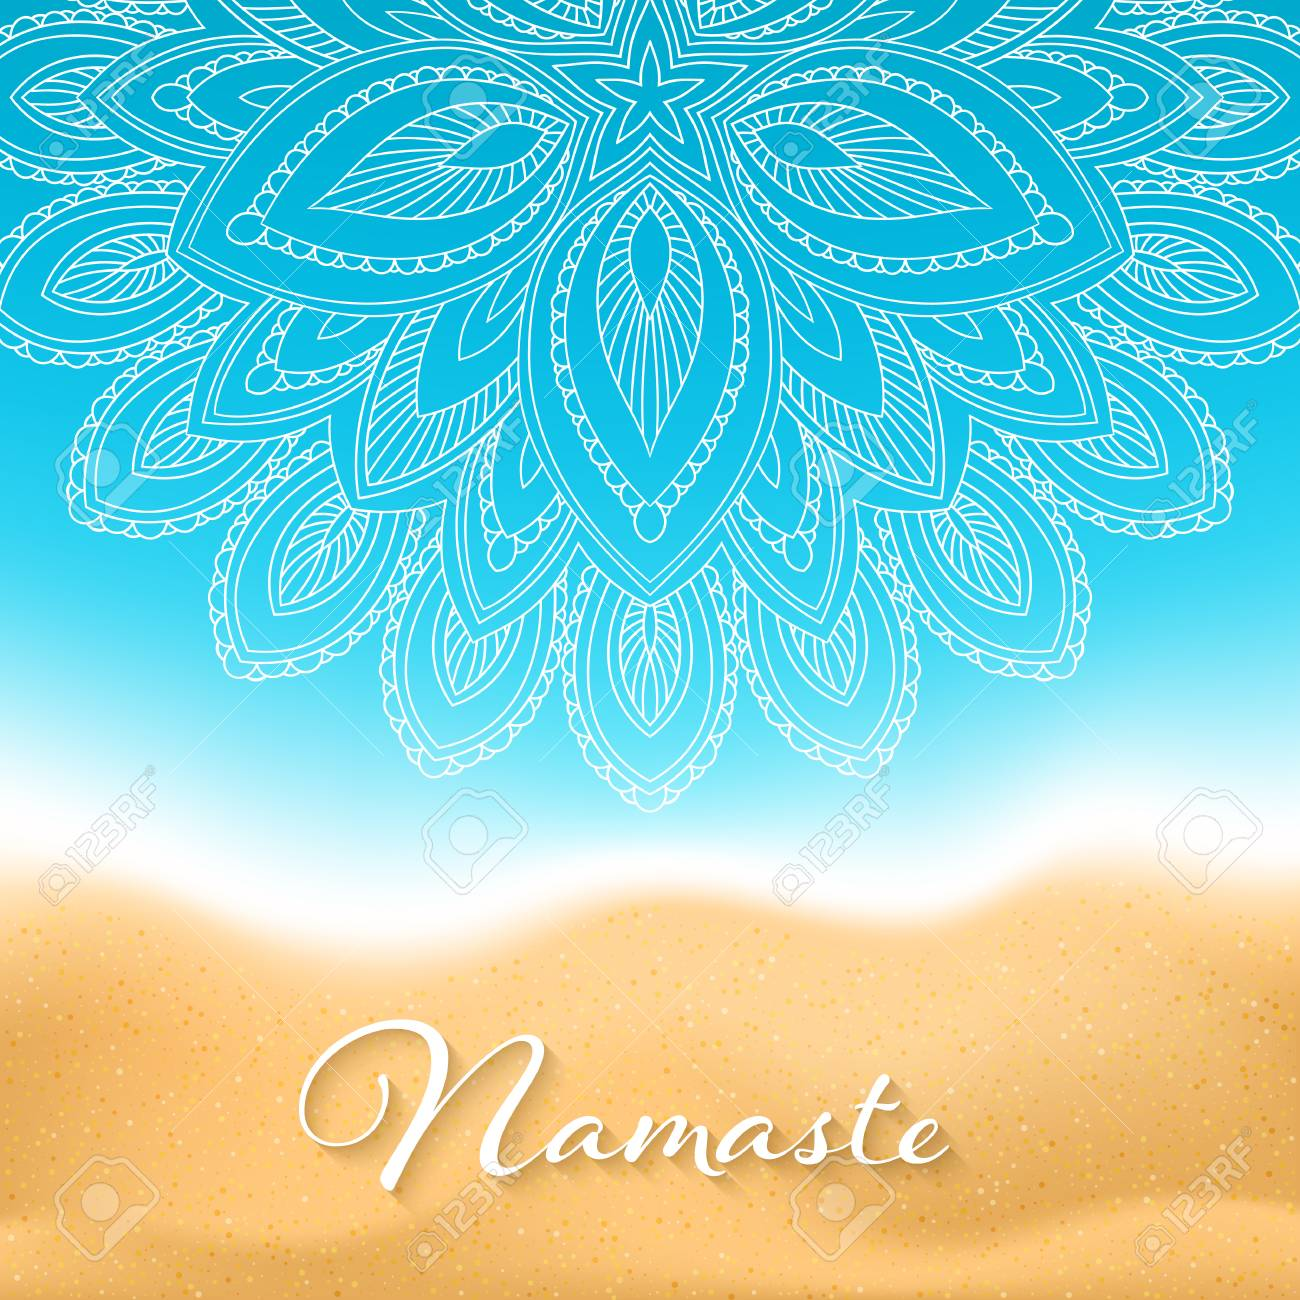 Flyer Or Brochure Template With Hand Drawn Mandala Pattern On Royalty Free Cliparts Vectors And Stock Illustration Image 92329338